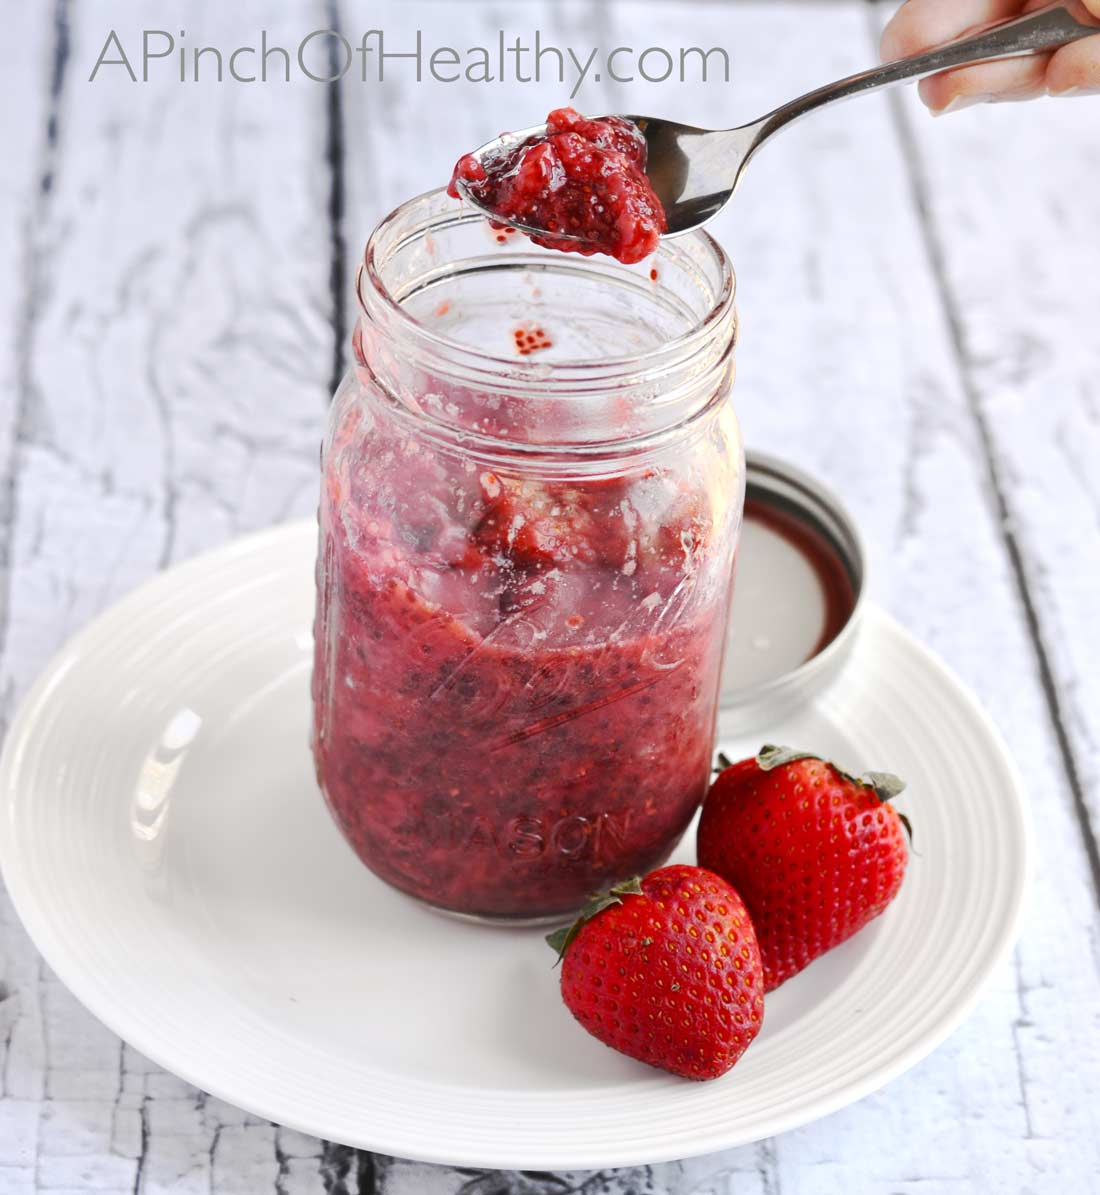 How to make chia jam| APinchOfHealthy.com